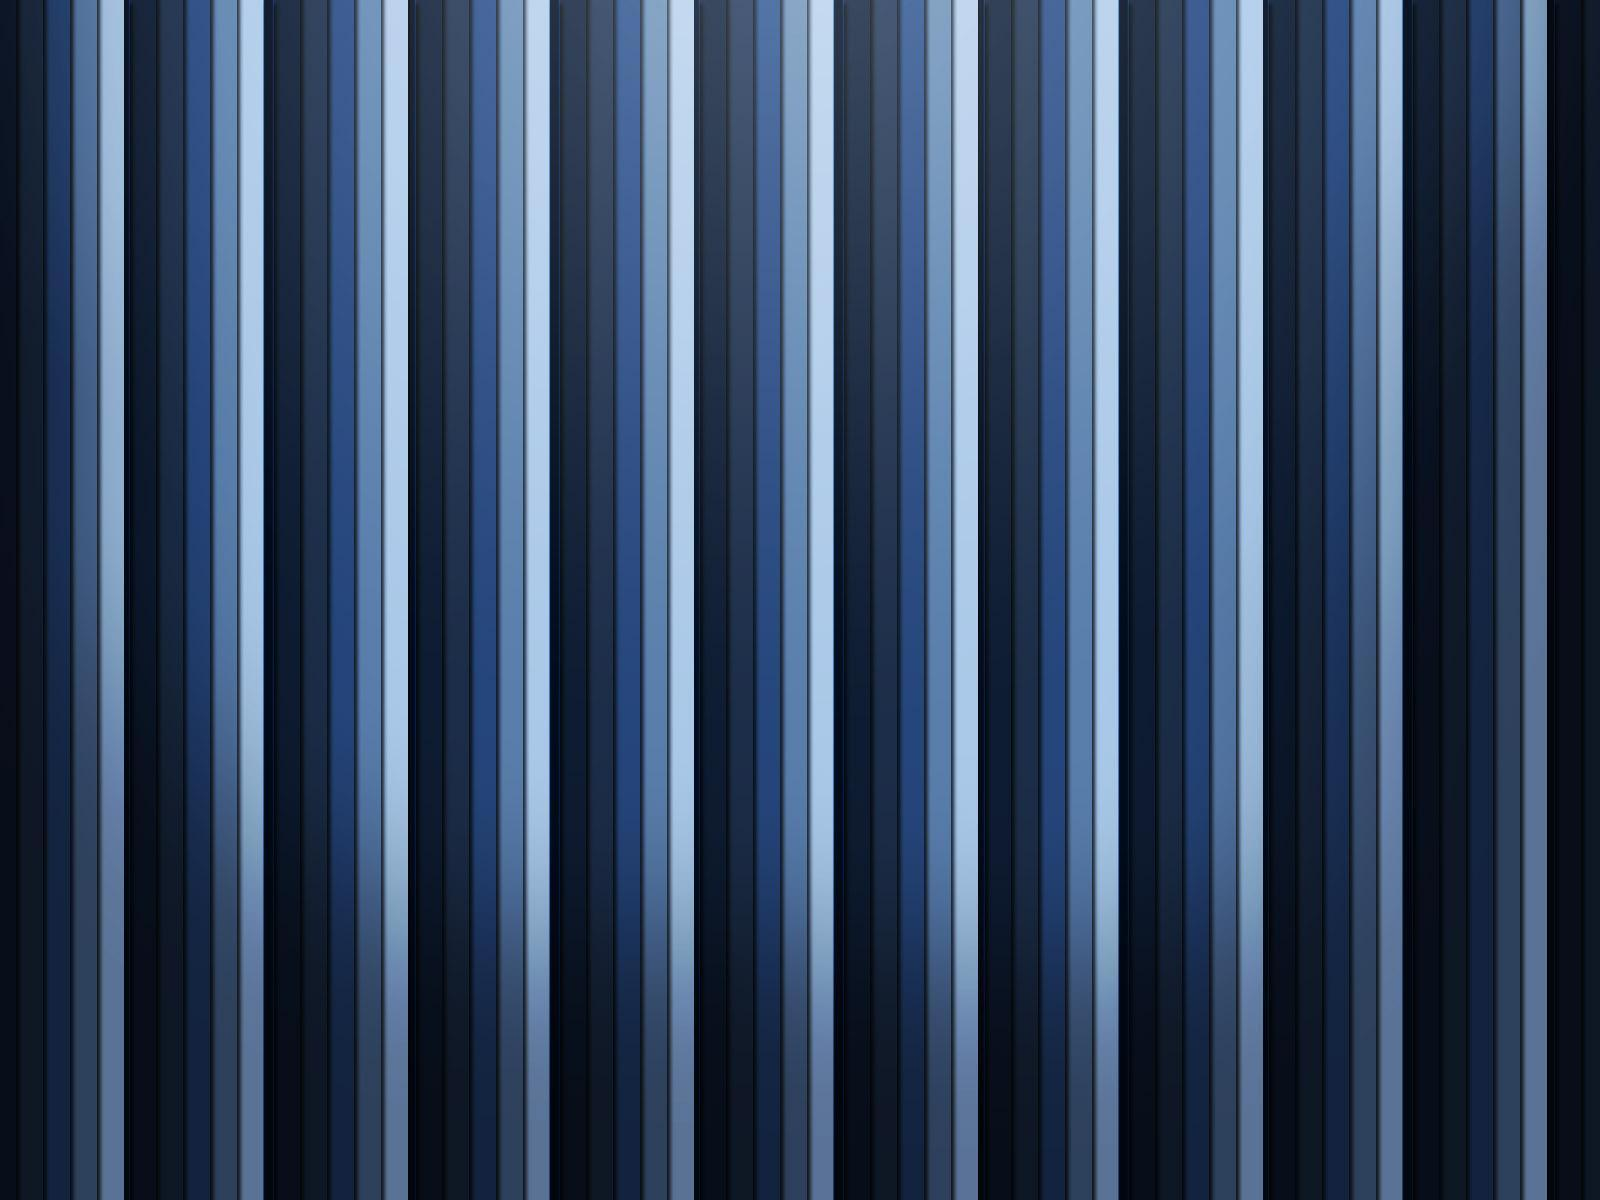 Blue Stripe Wallpaper Navy Blue Stripe Wallpaper Blue Wallpapers 1600x1200